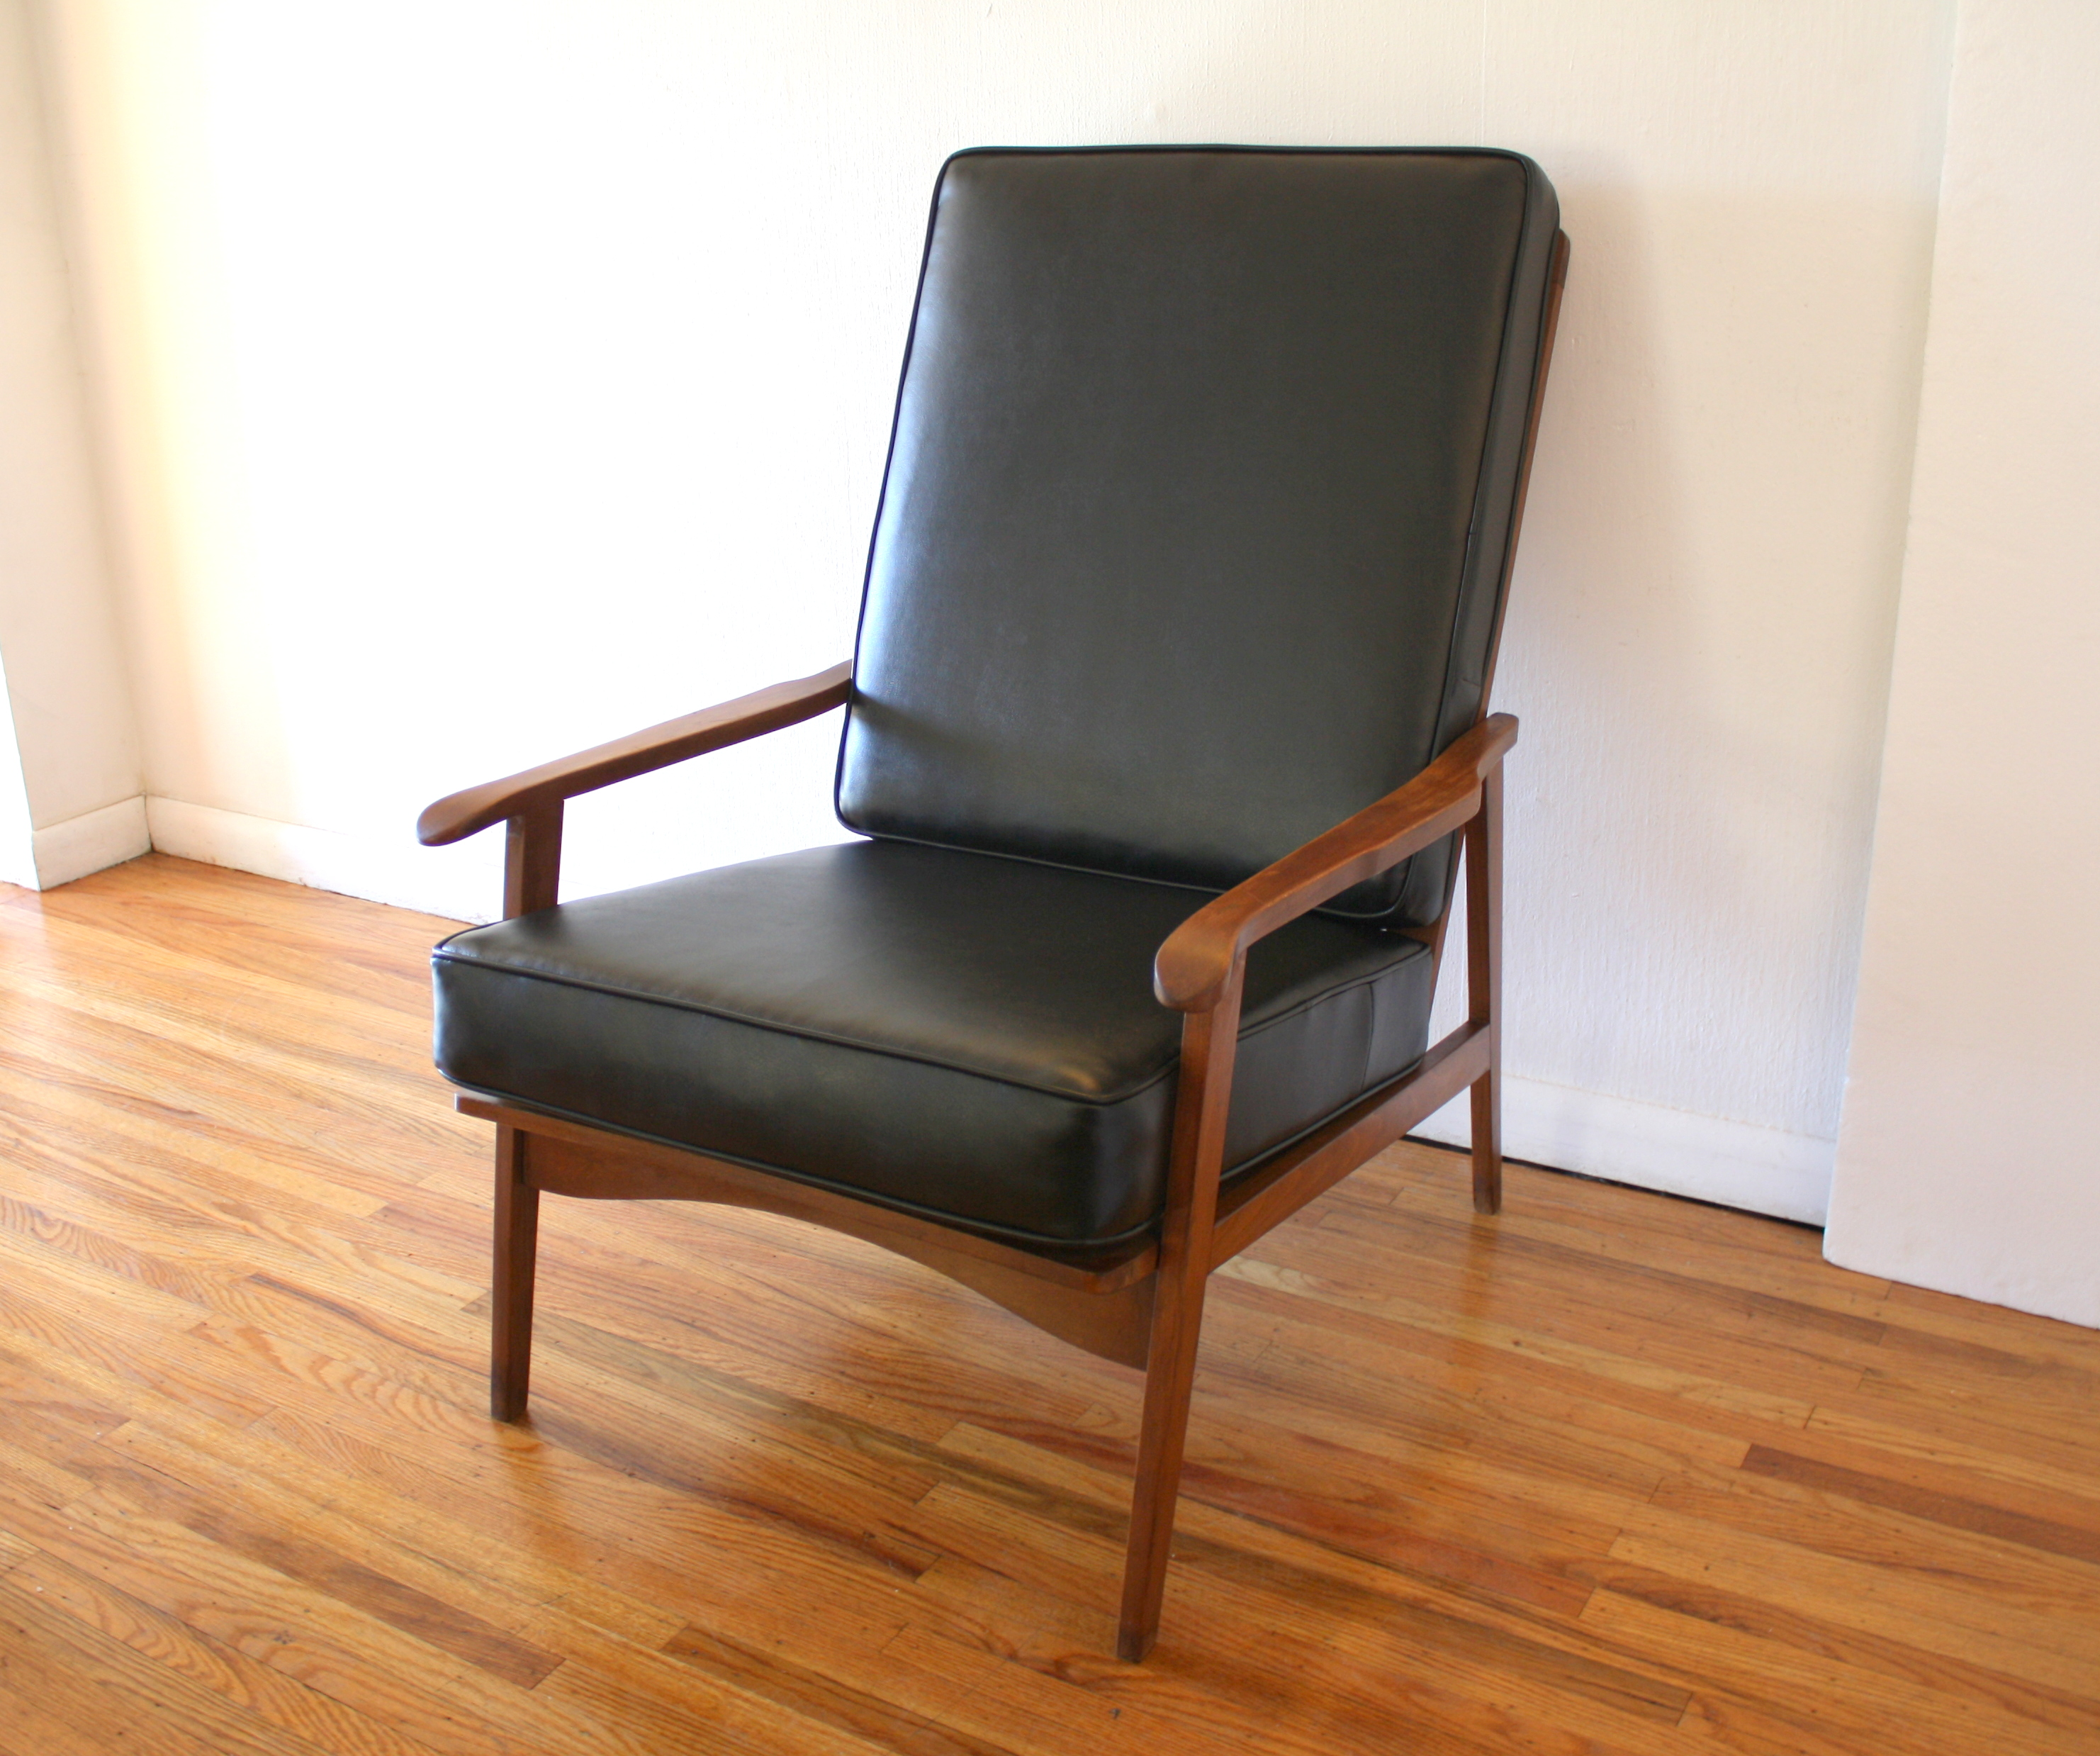 mcm arm lounge chair with black naugahyde 1.JPG